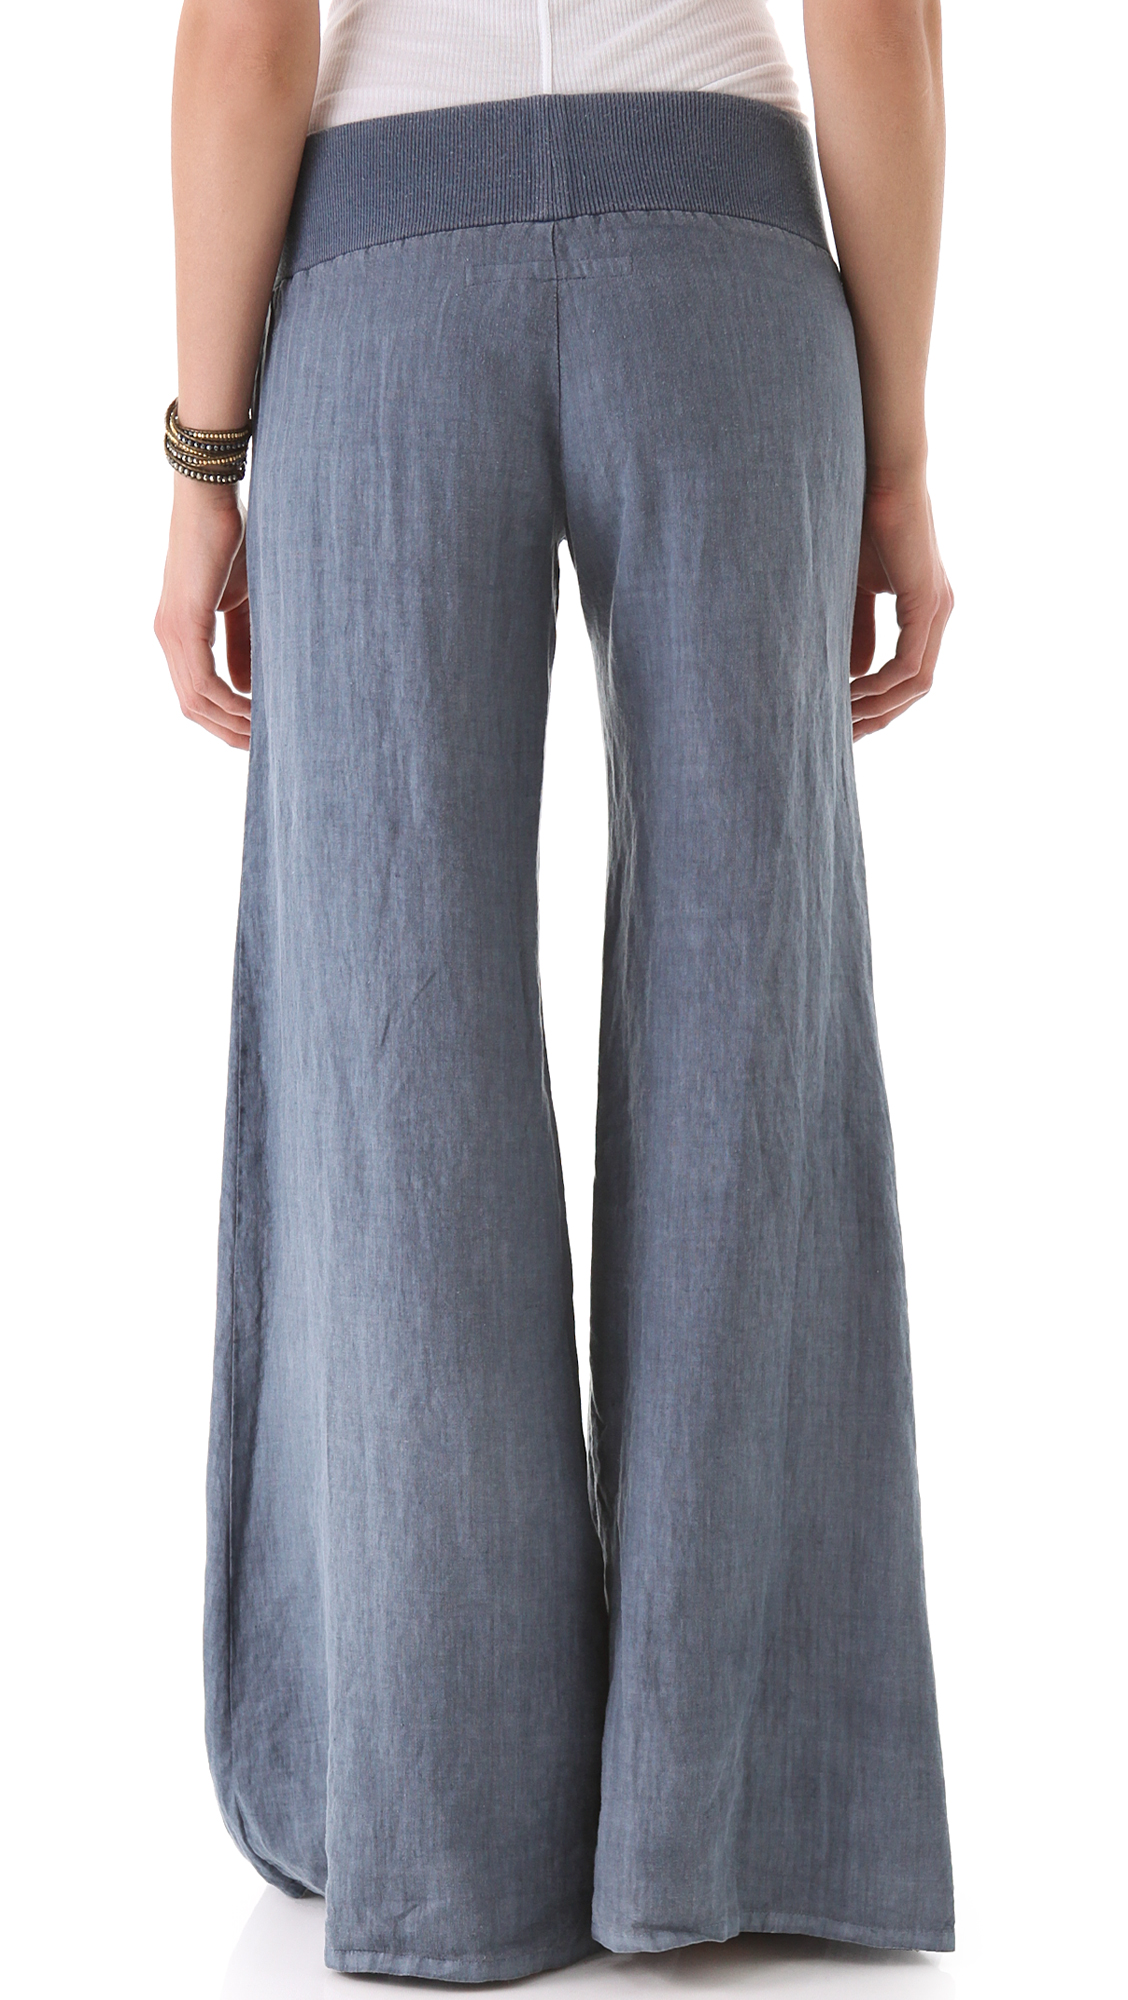 Creative The Material Is A Cotton Poplin And Machine Washable  Cropped WideLeg Pant In Heavy Linen, French Blue, Size 8  I Was Excited To Try These Pants As The Color Looked Gorgeous Online And A Heavier Weight Linen Would Be Good For Work